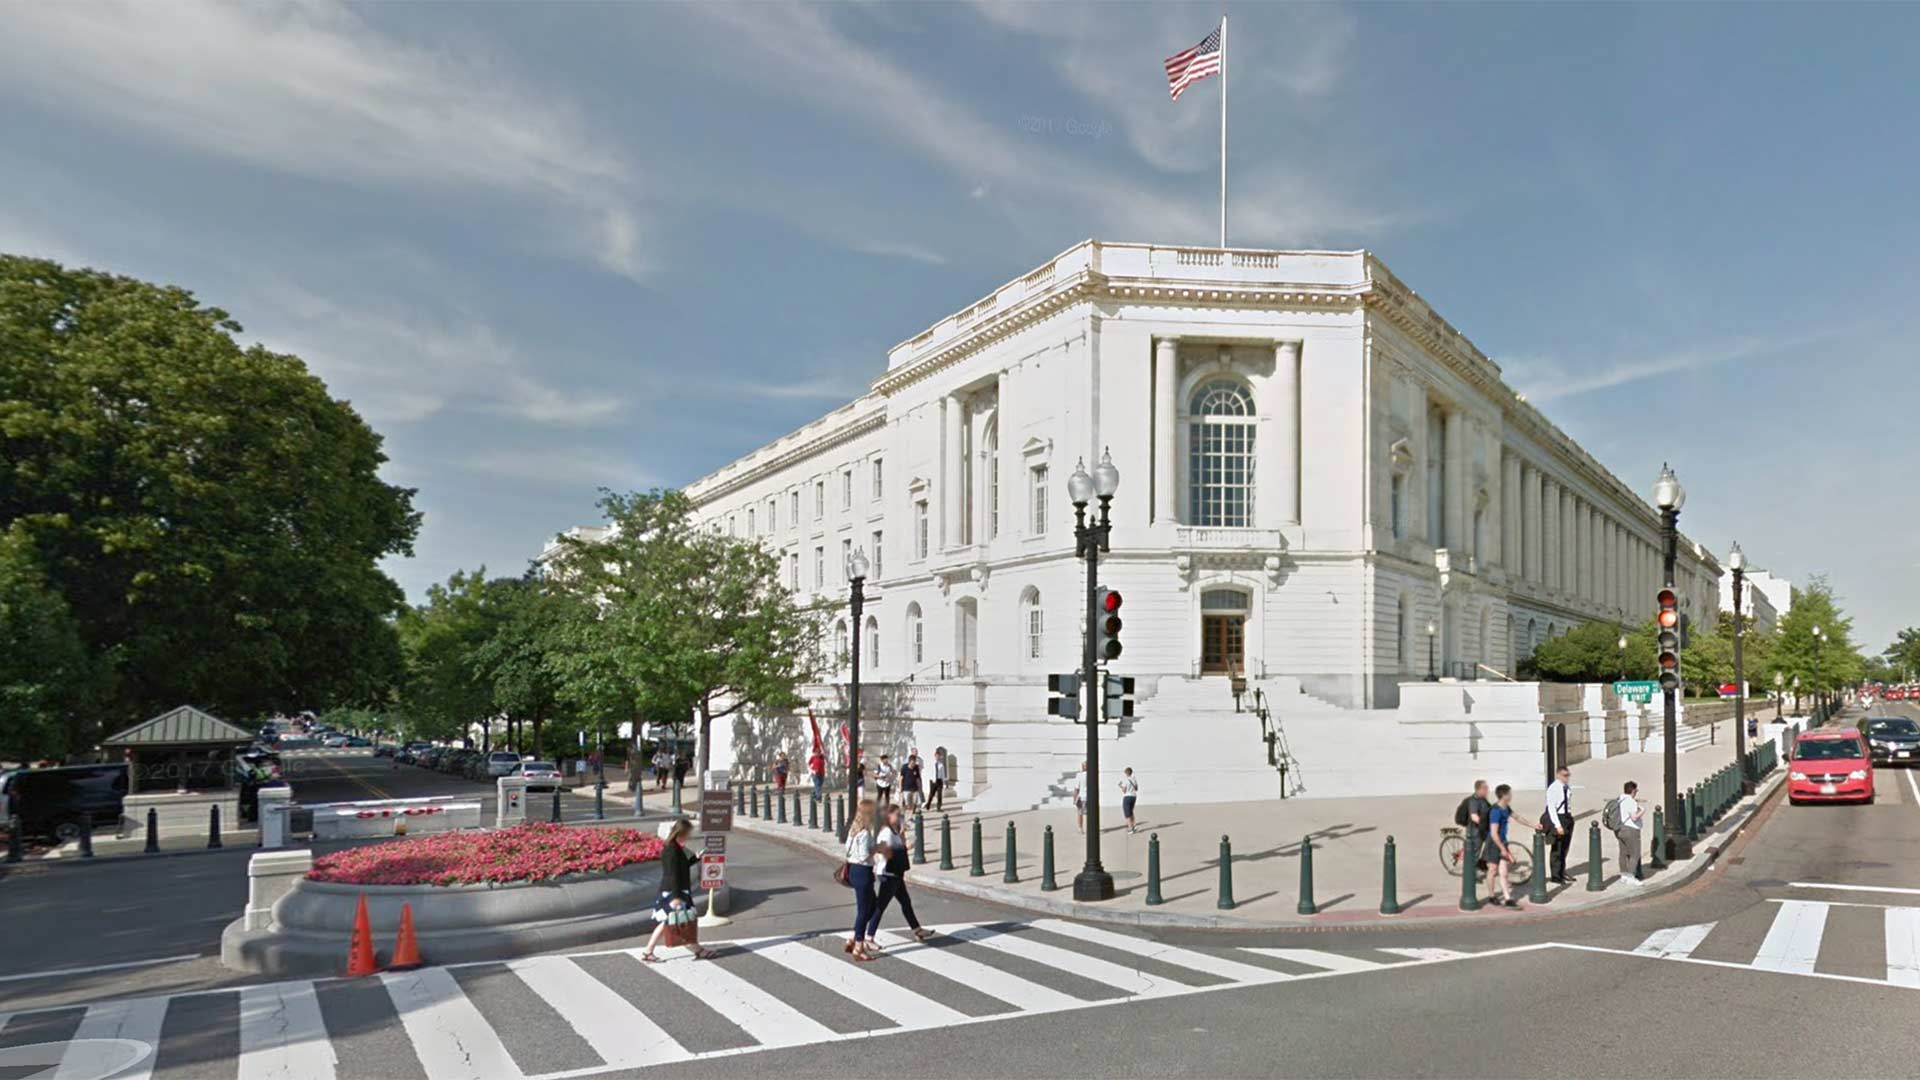 Google Streetview of the Russell Senate Office Building in Washington, D.C.